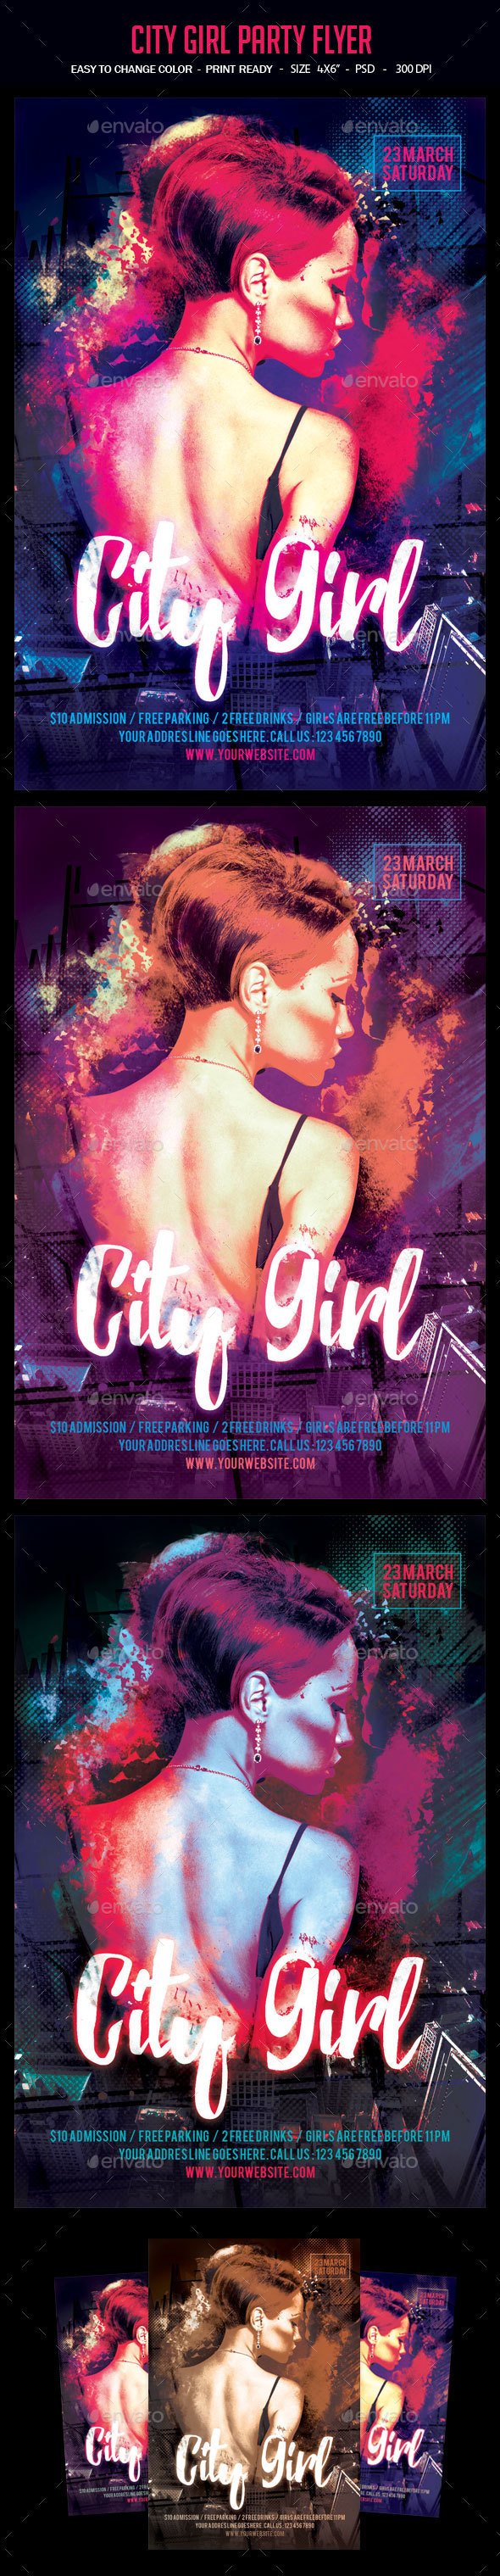 City Girl Party Flyer - Clubs & Parties Events